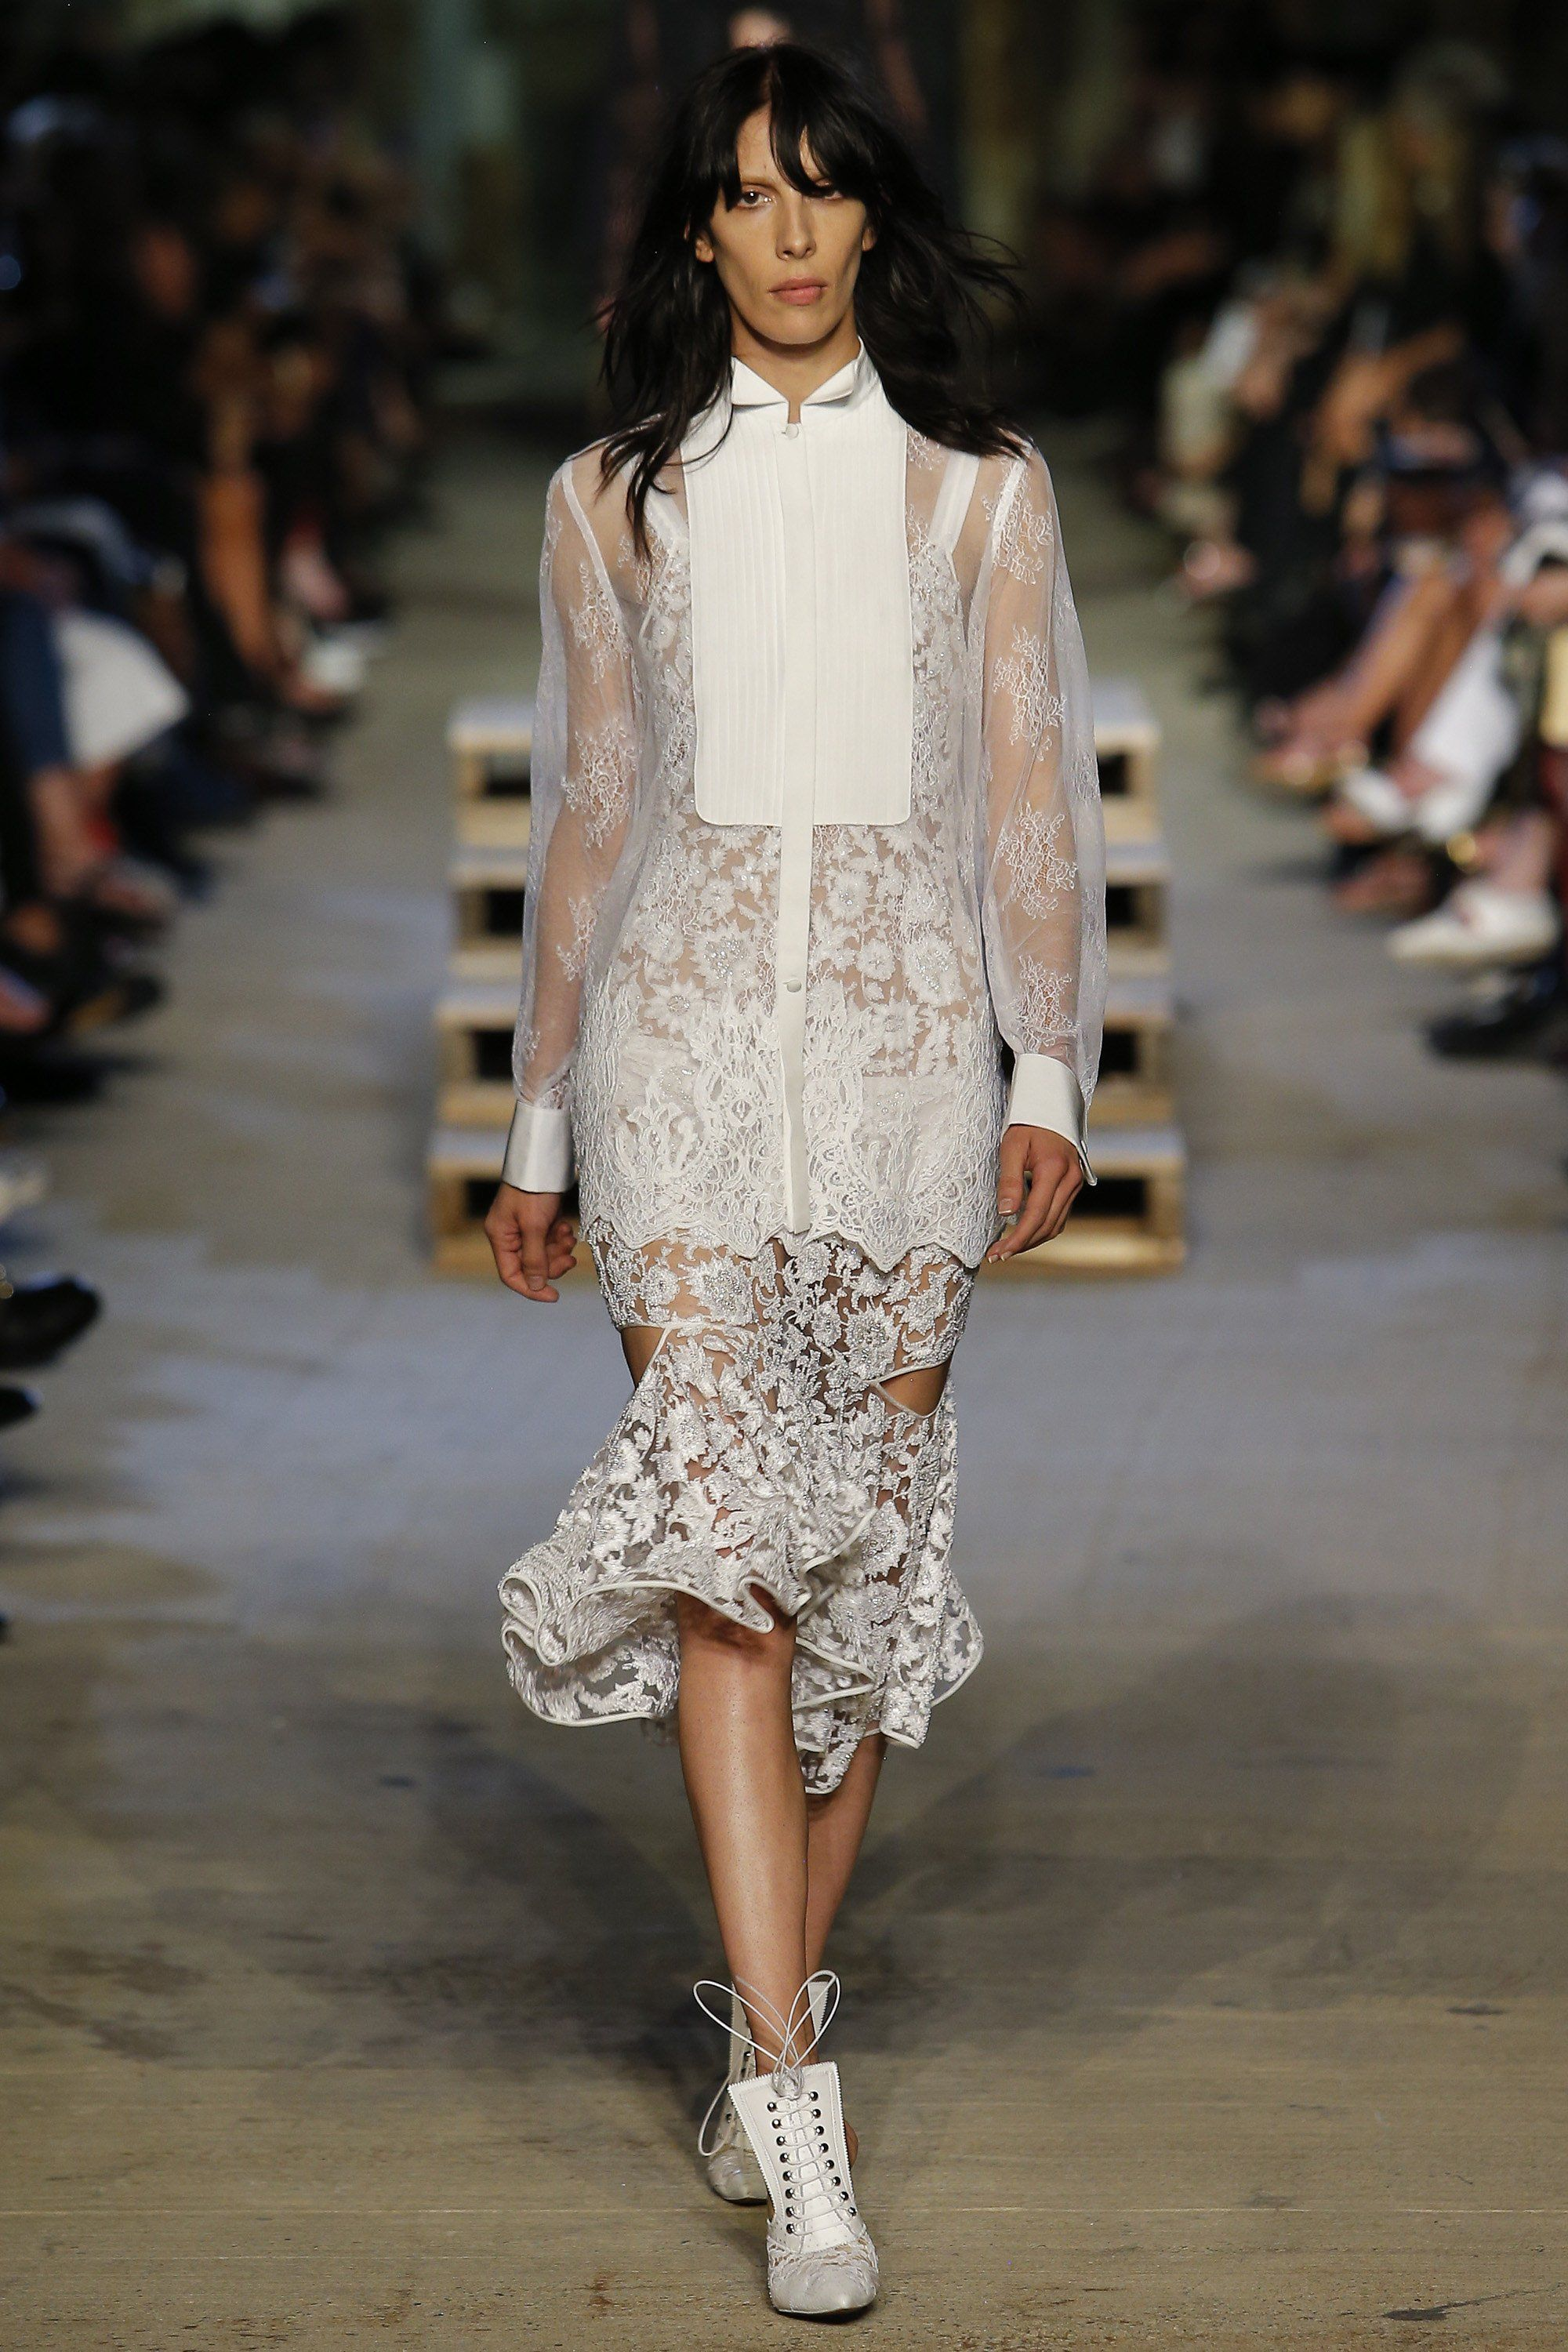 Bridal Looks From the Spring 2016 Runways Givenchy - Riccardo Tisci brings his deft touch to this lace stunner with a bib front for a black-tie vibe.